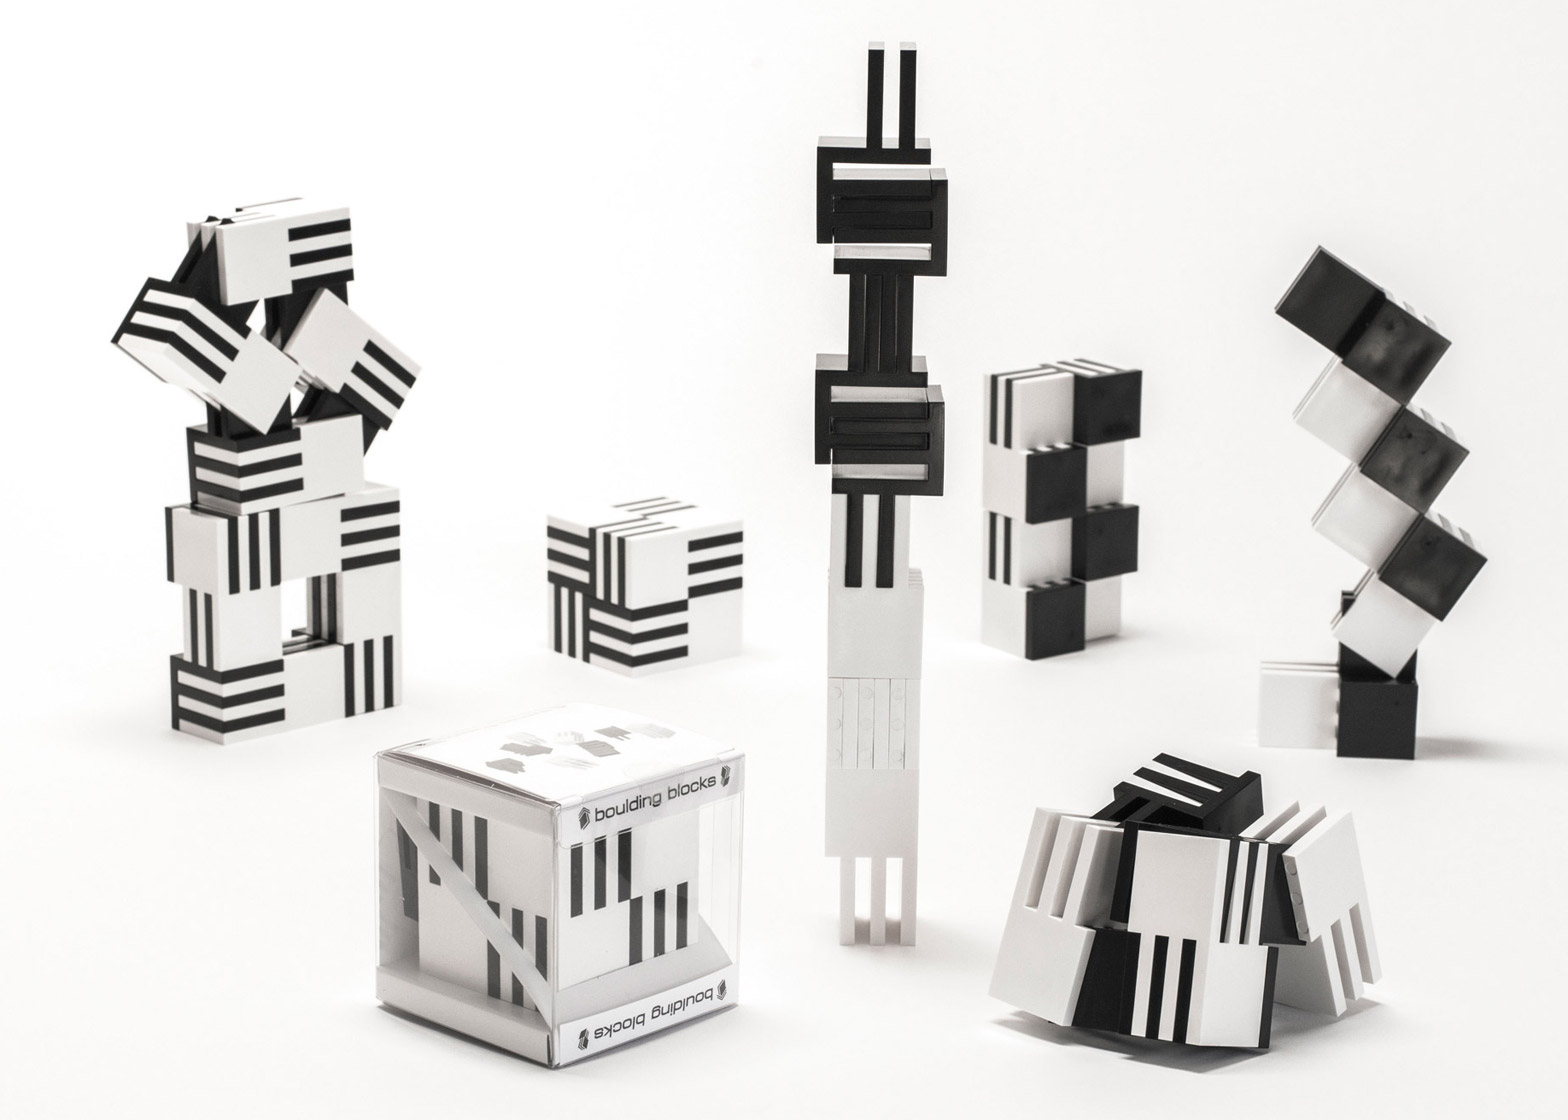 Mark Boulding designs boulding block toys for children